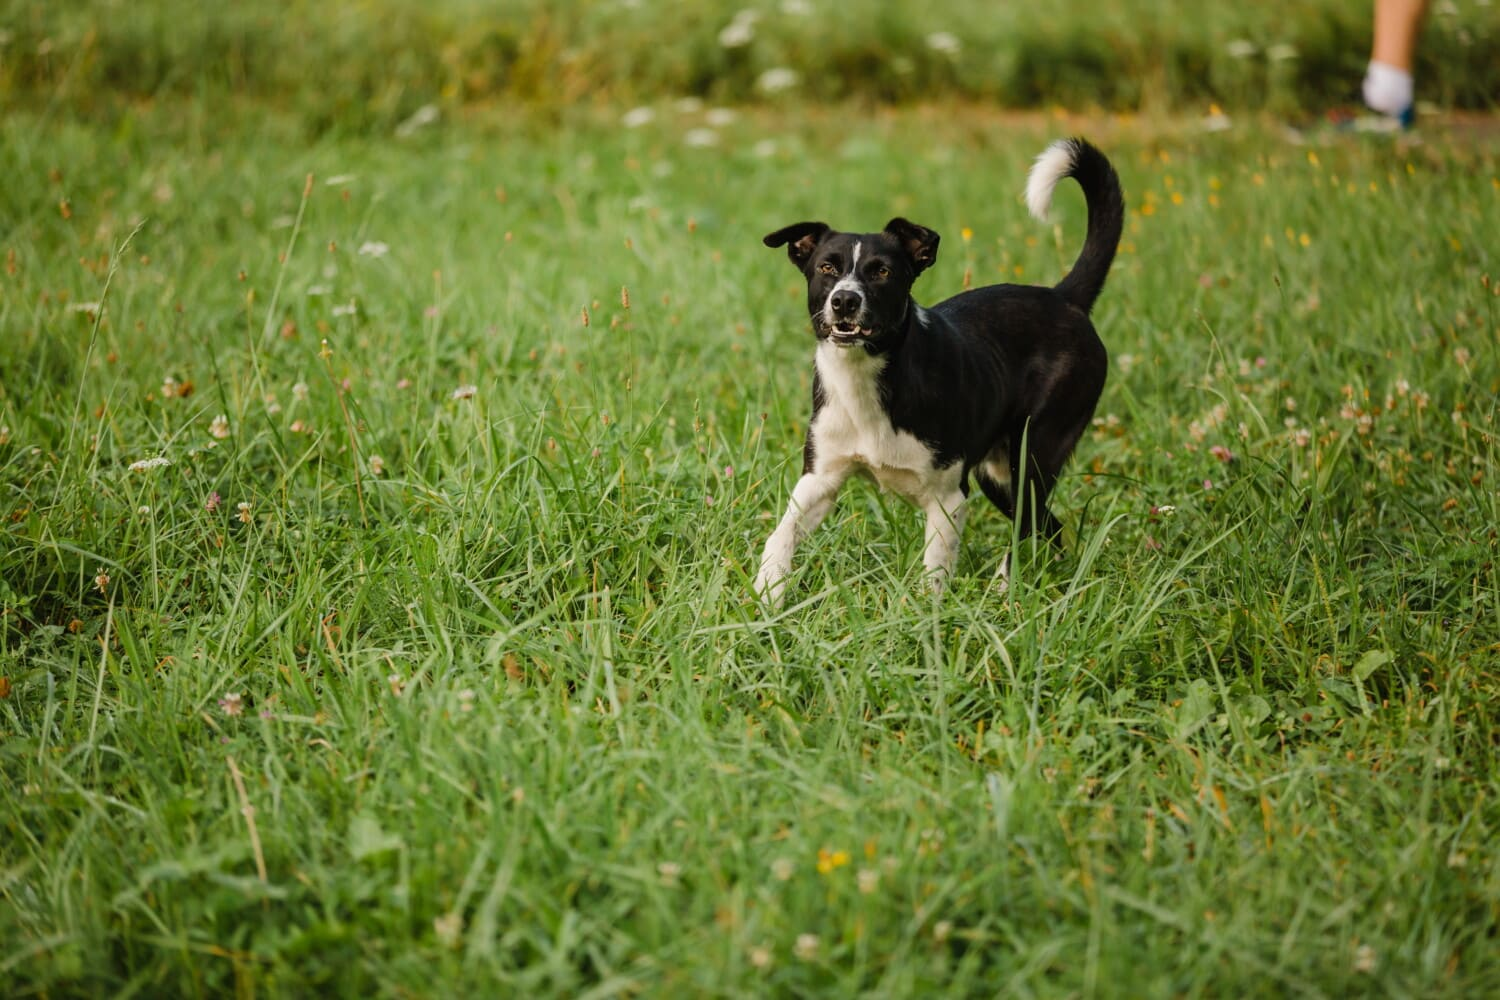 adorable, black, dog, walking, green grass, pet, hunting dog, canine, racer, grass